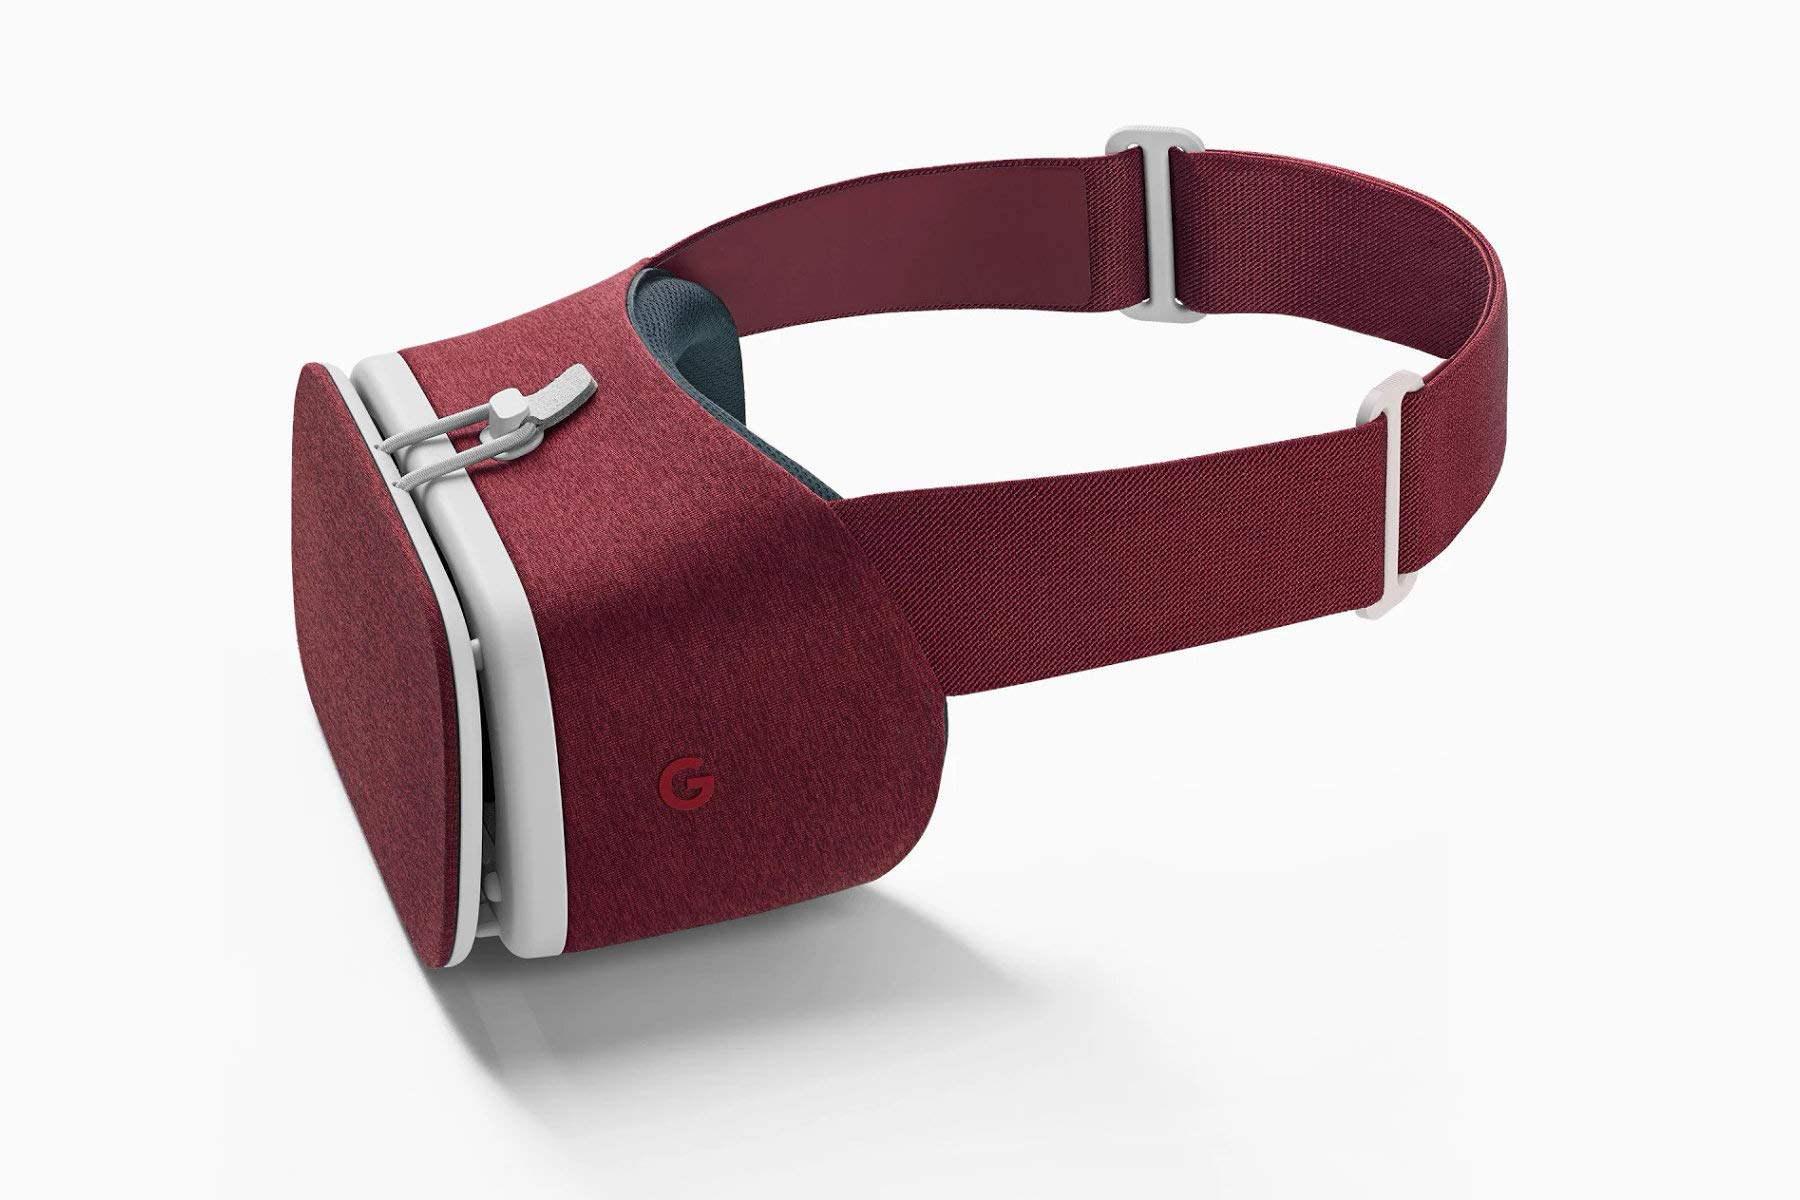 Google Daydream View - VR Headset (Crimson) by Google